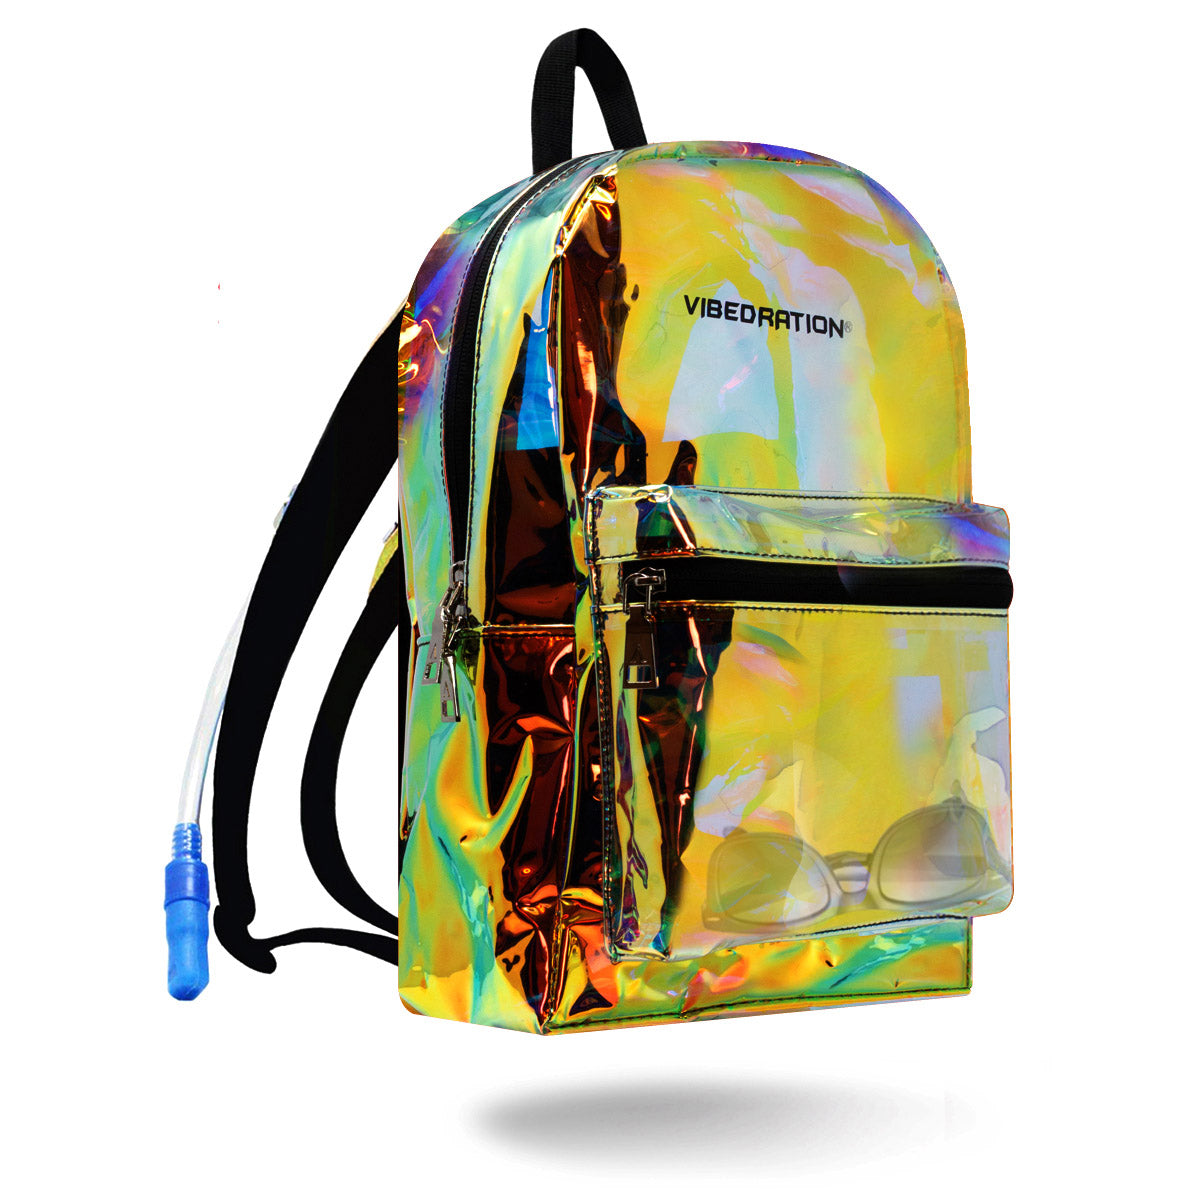 Transparent Gold Backpack for Burning Man